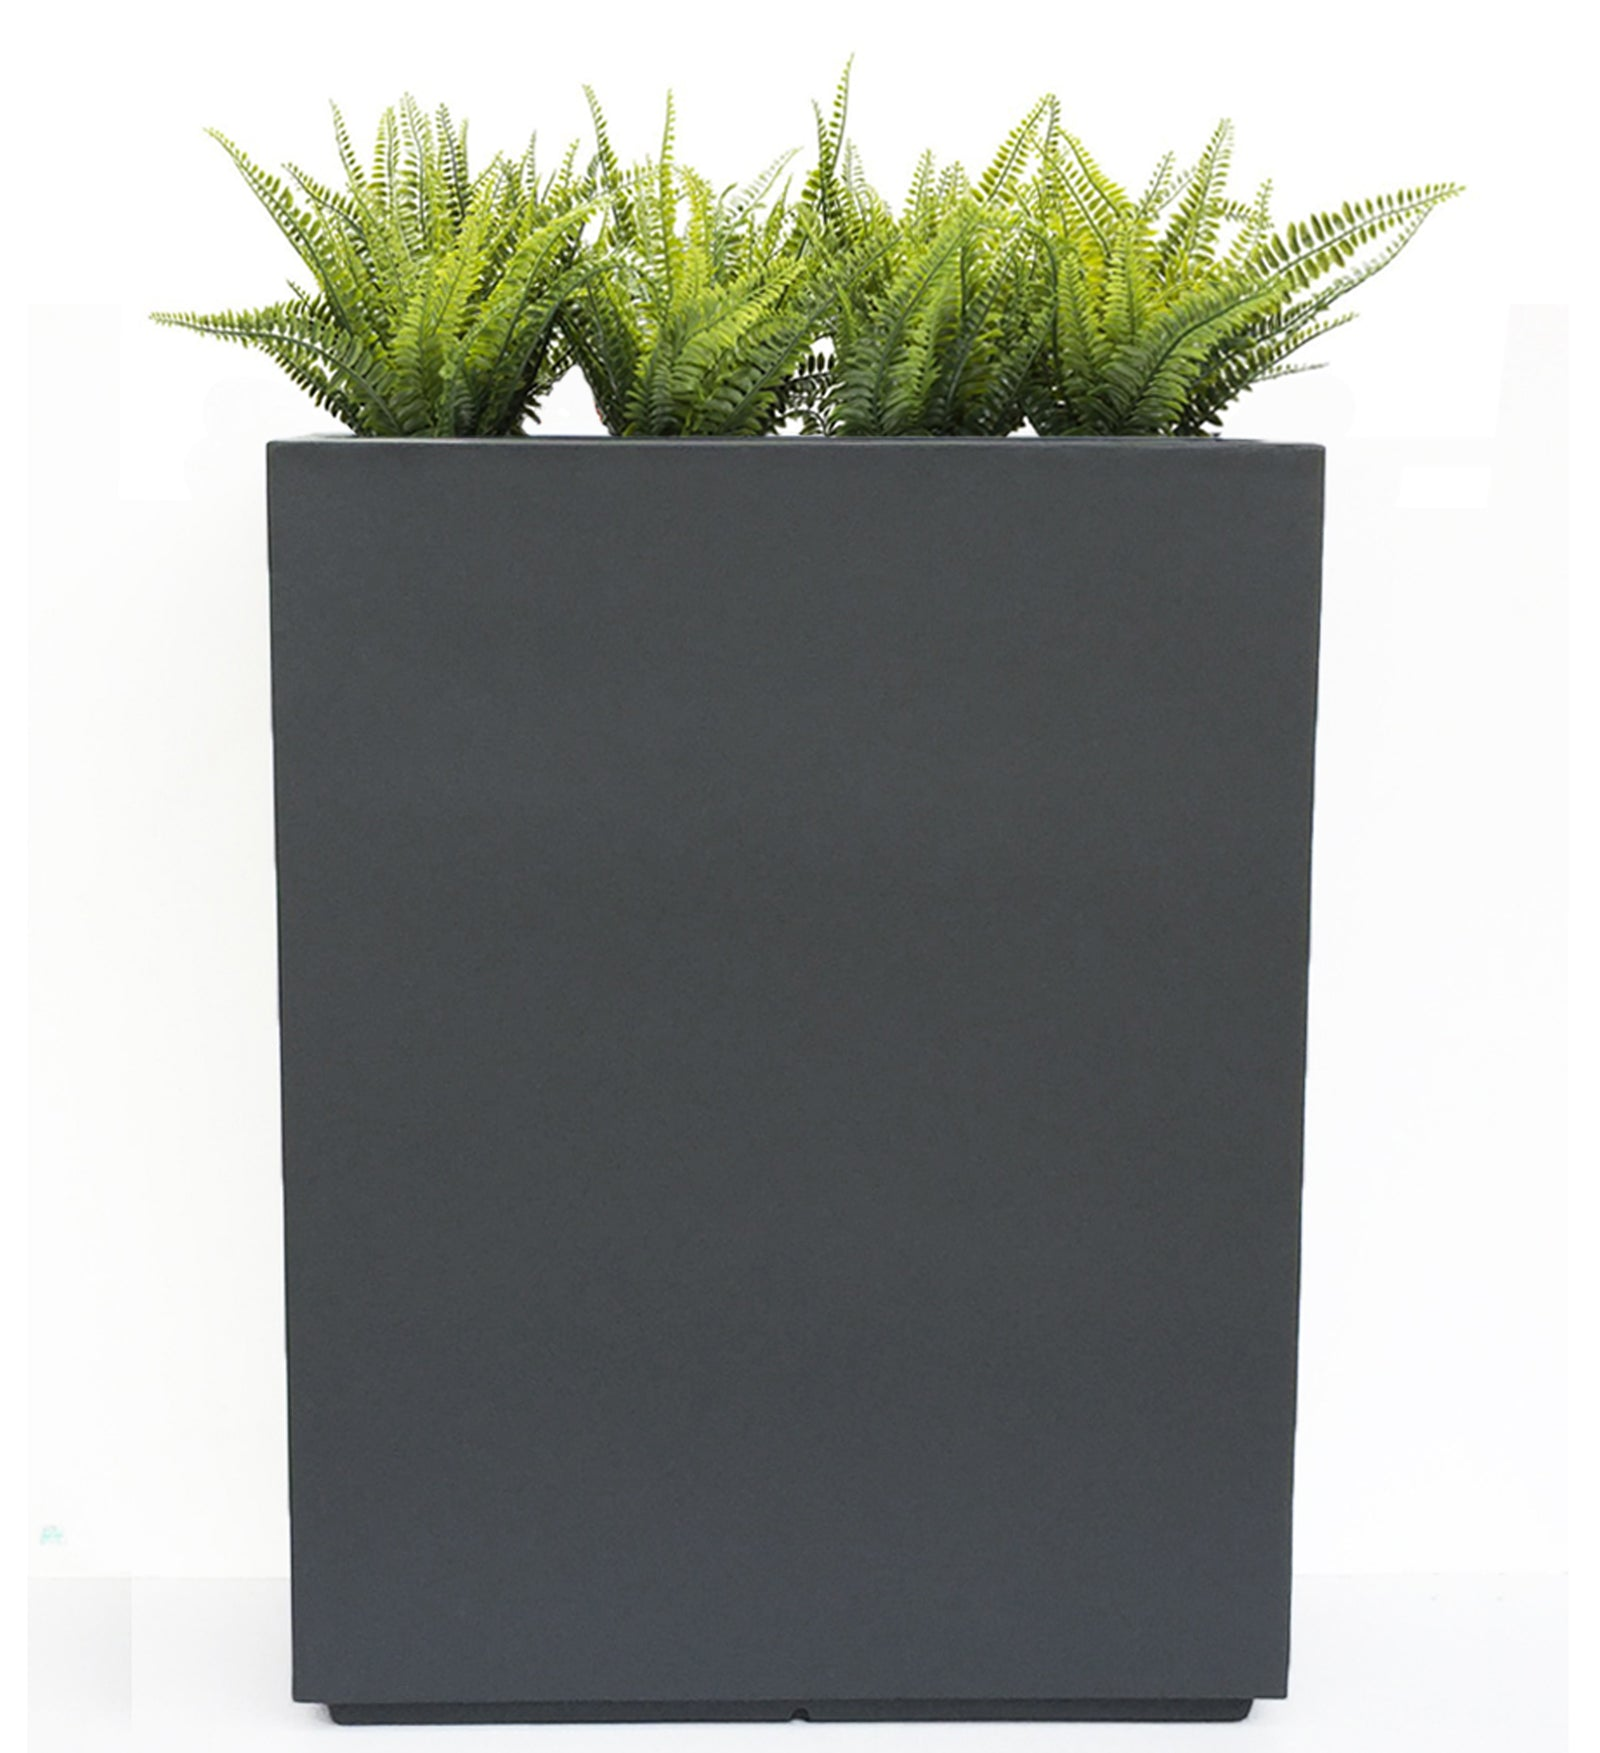 NMN Designs - Hamilton Vertical Planter - Tall, Gray